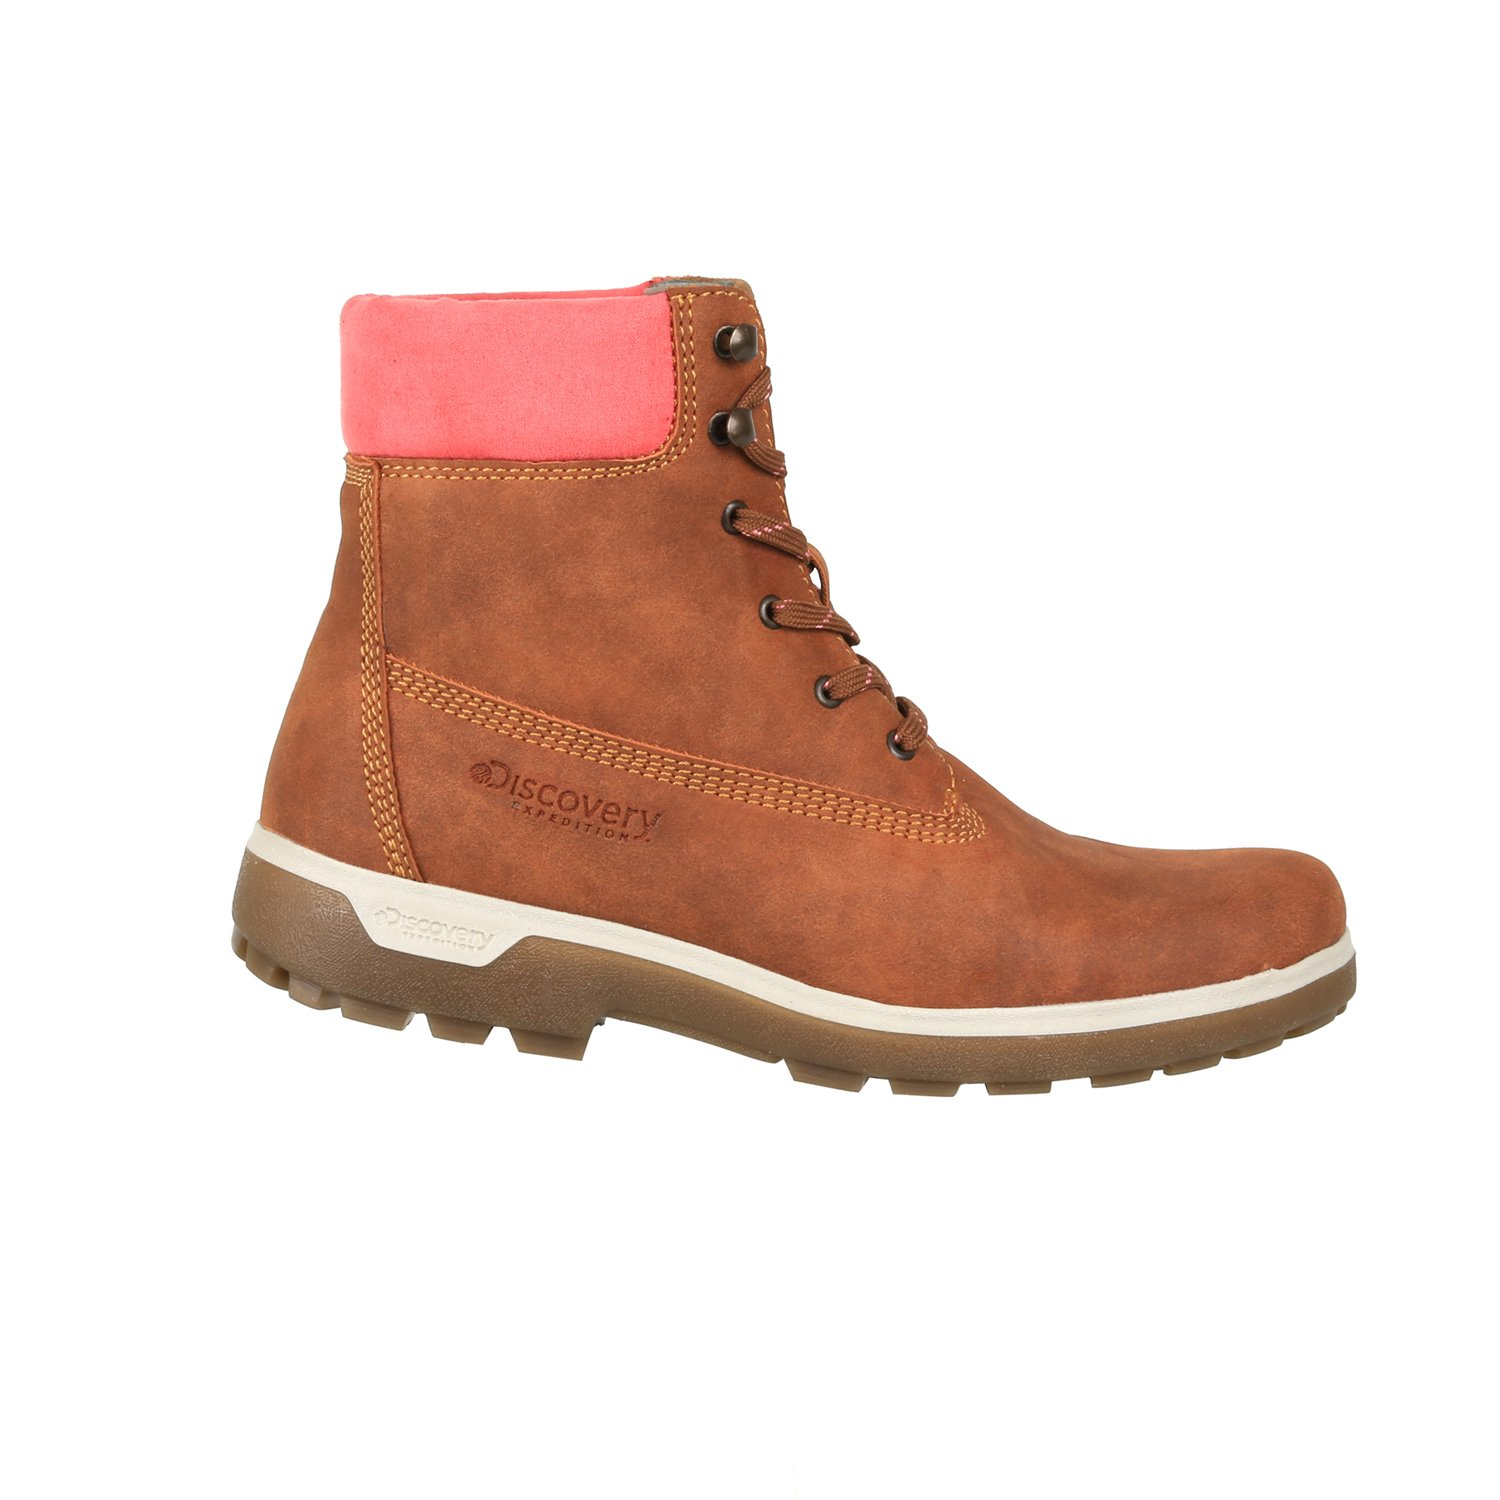 Discovery Expedition Women's Adventure High Top Lace up Hiking Boot Cinnamon Size 9.5 by Discovery Expedition (Image #1)